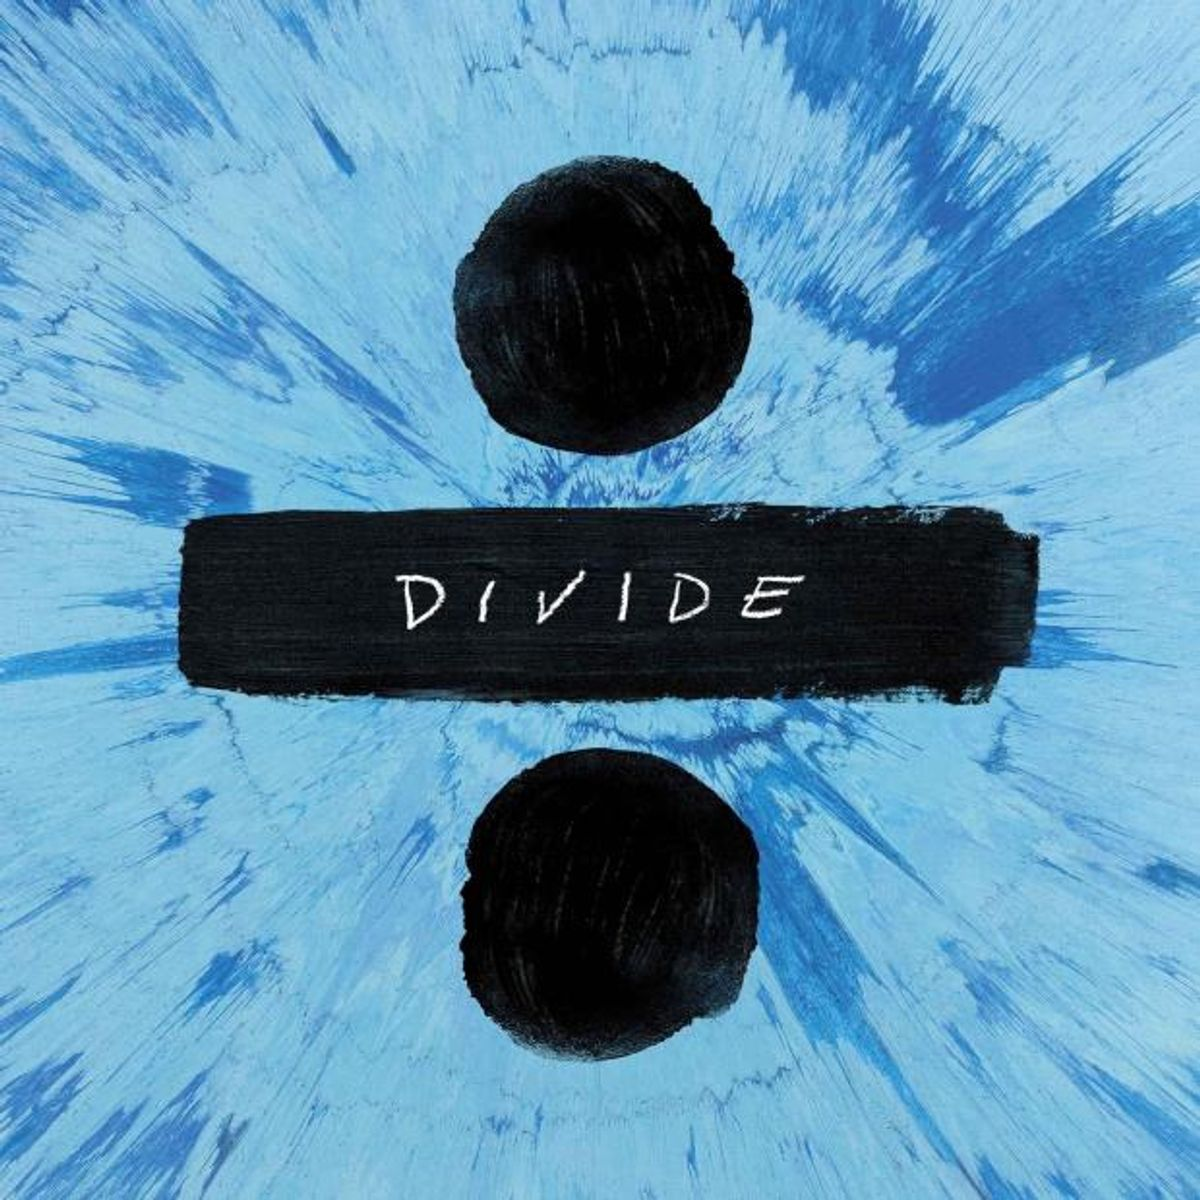 A Review of Divide